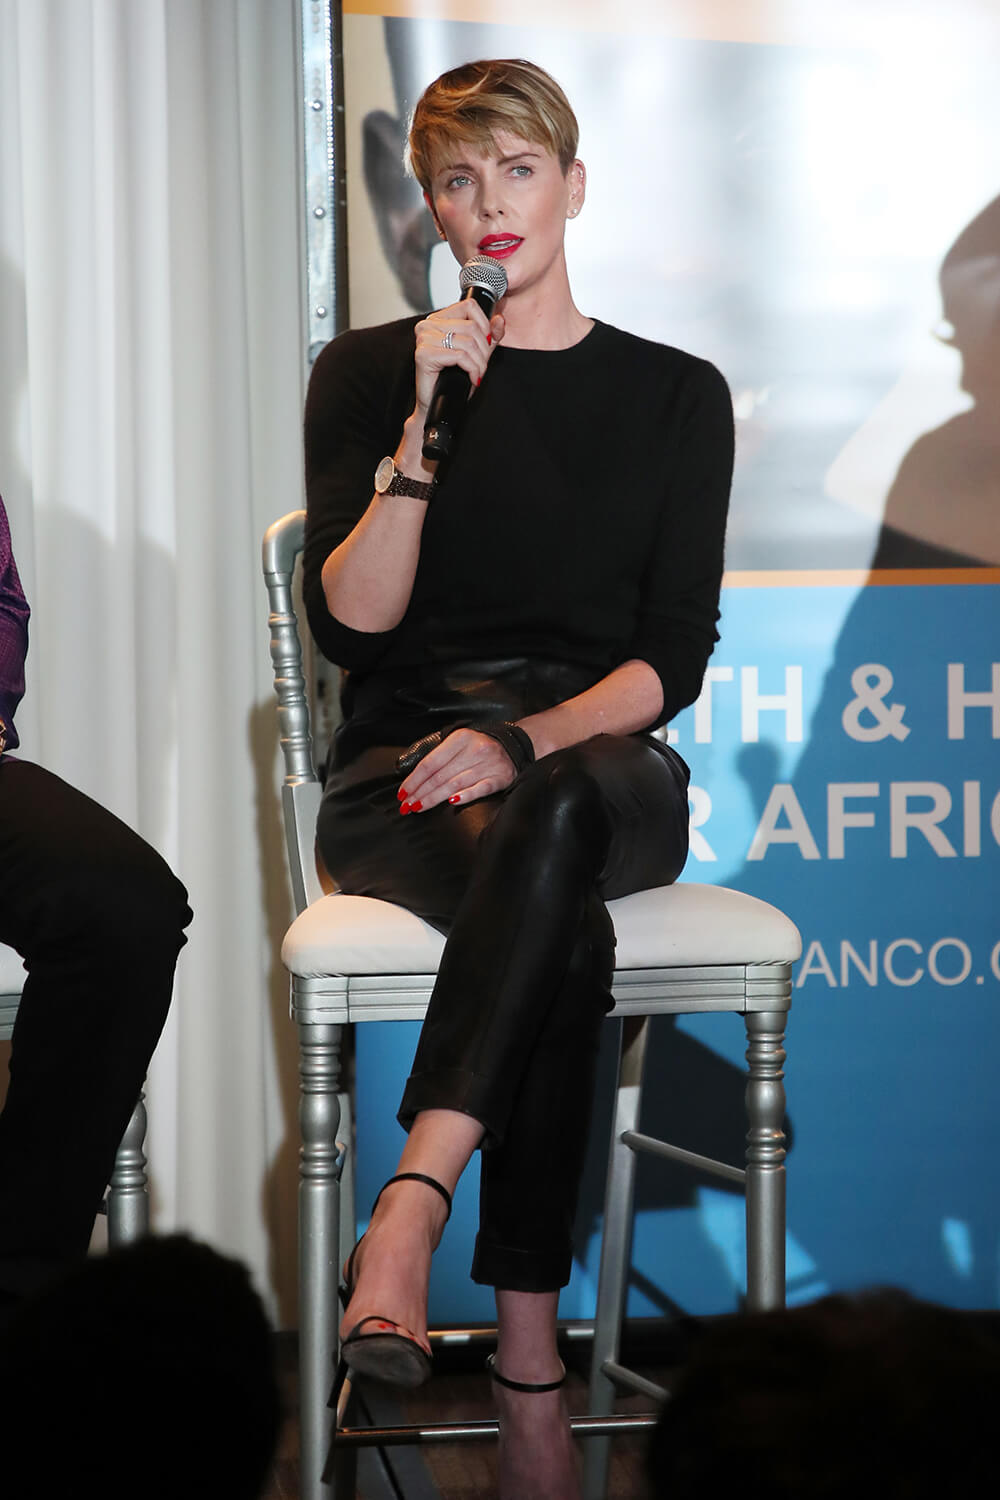 Charlize Theron speaks at the GEANCO Foundation Hollywood Gala